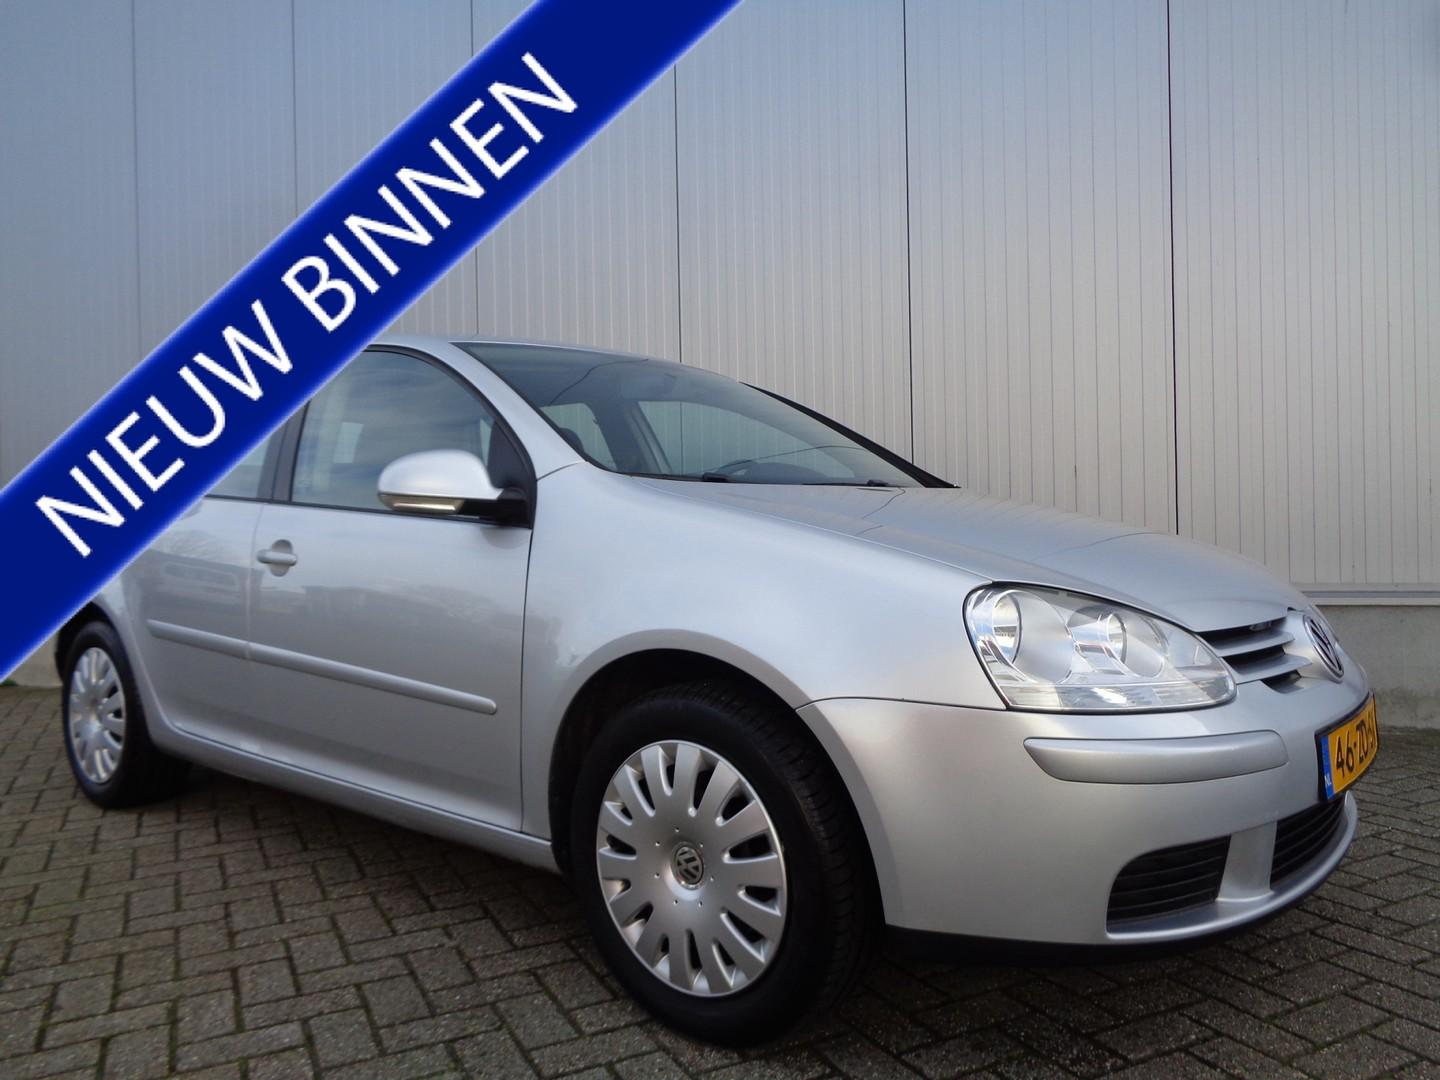 Volkswagen Golf 1.6 optive 4 clima cruise 5drs